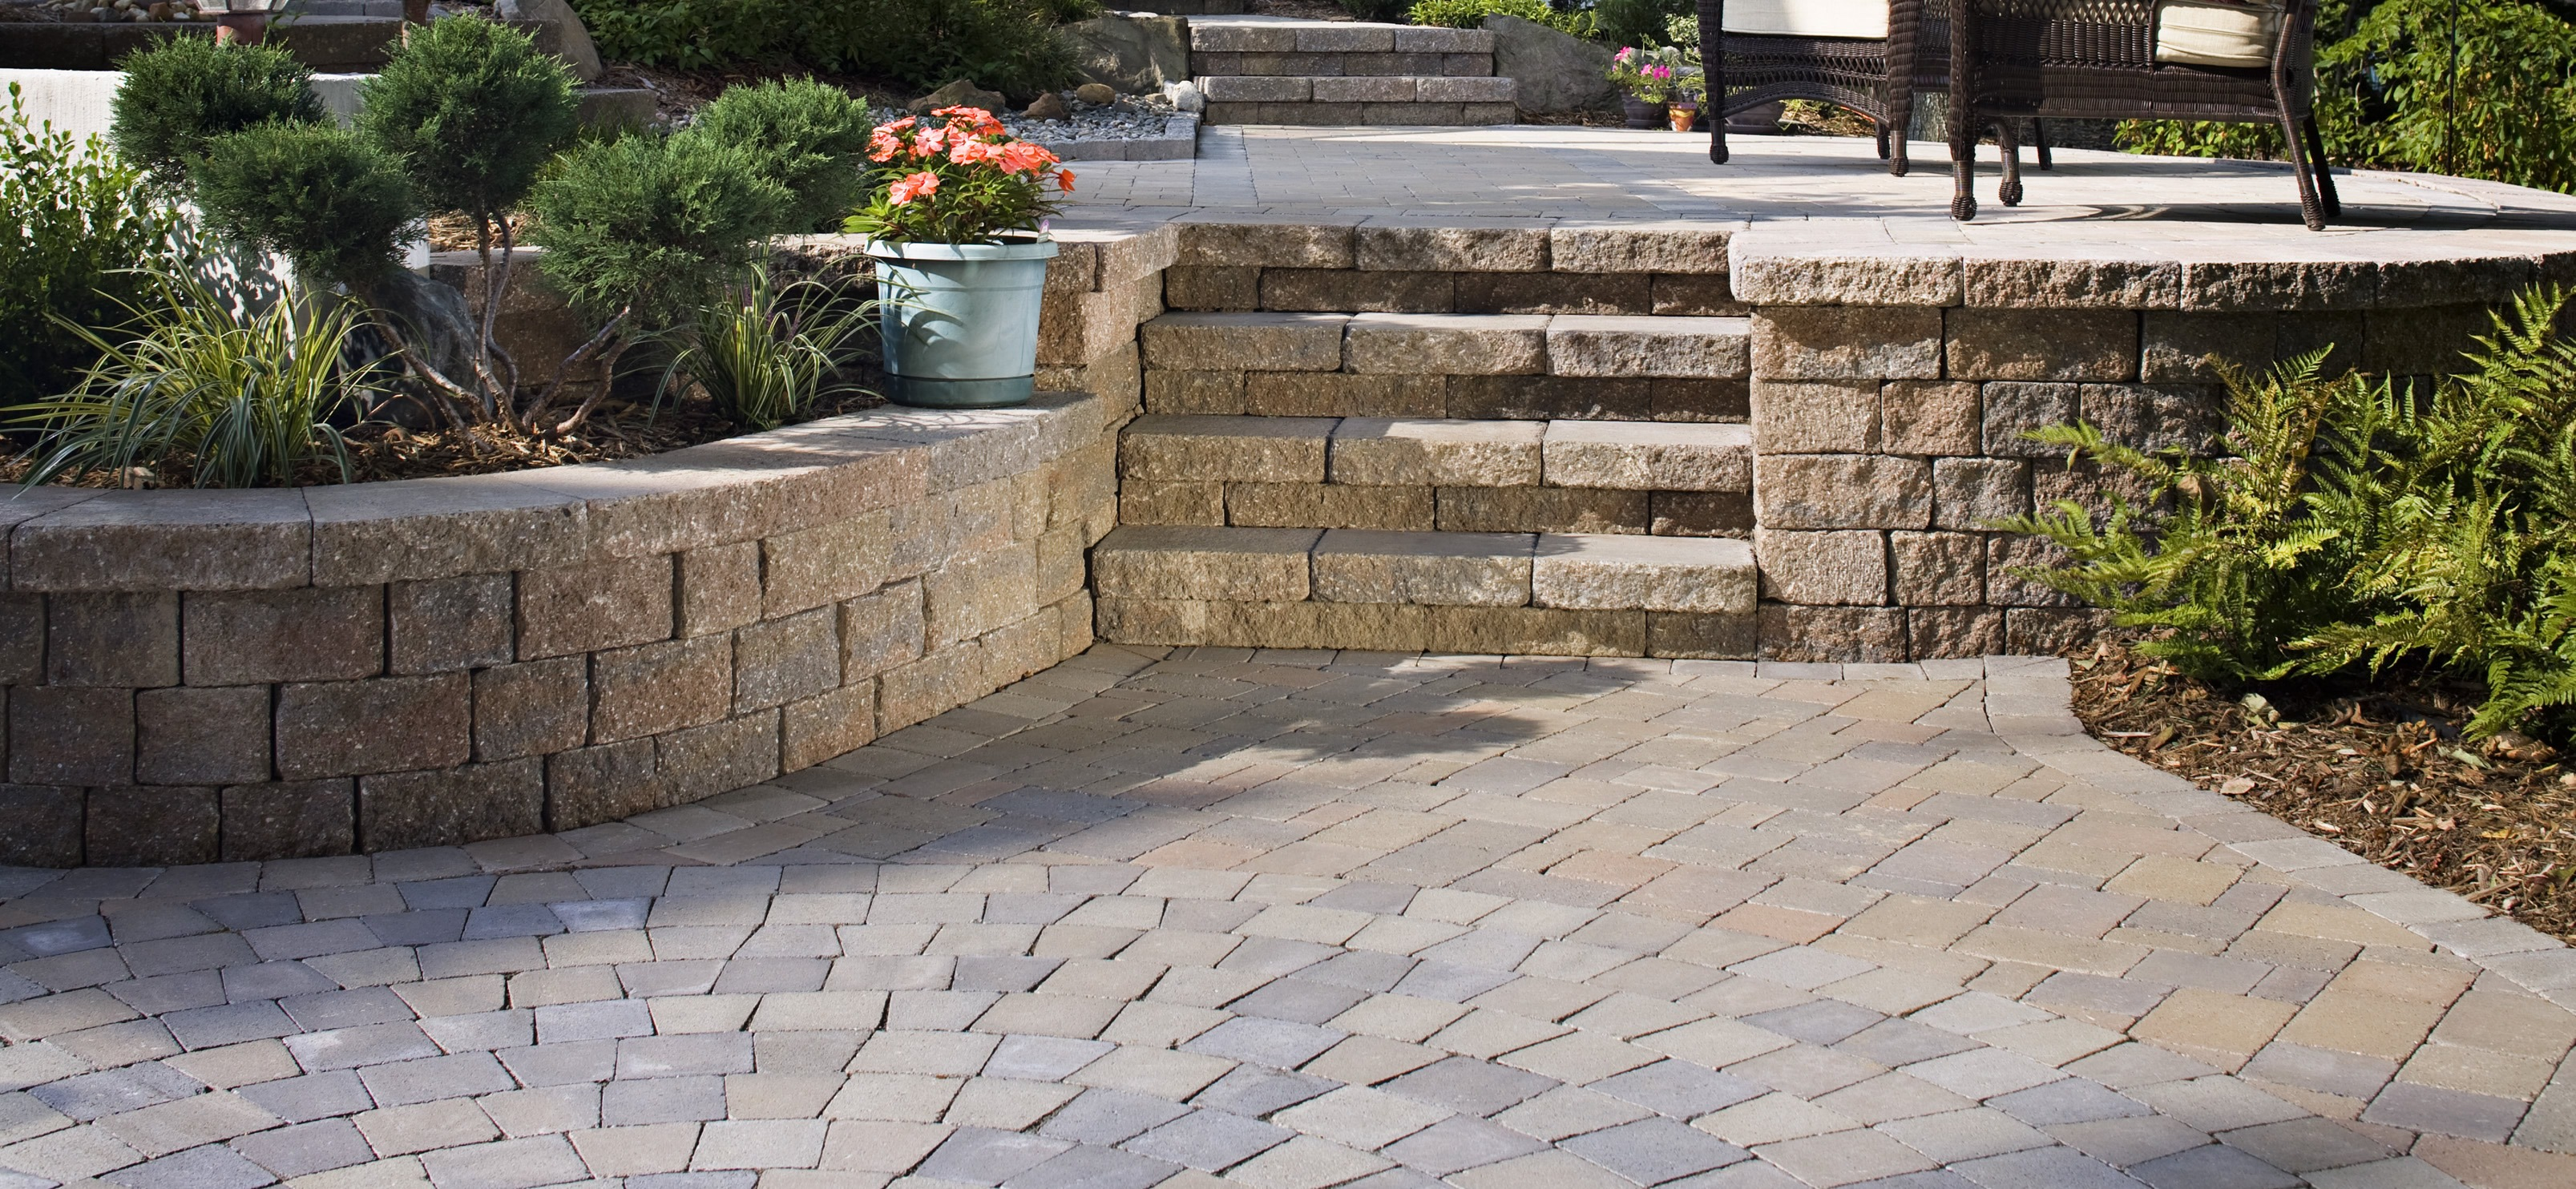 Concrete Retaining Wall & Patio Pavers